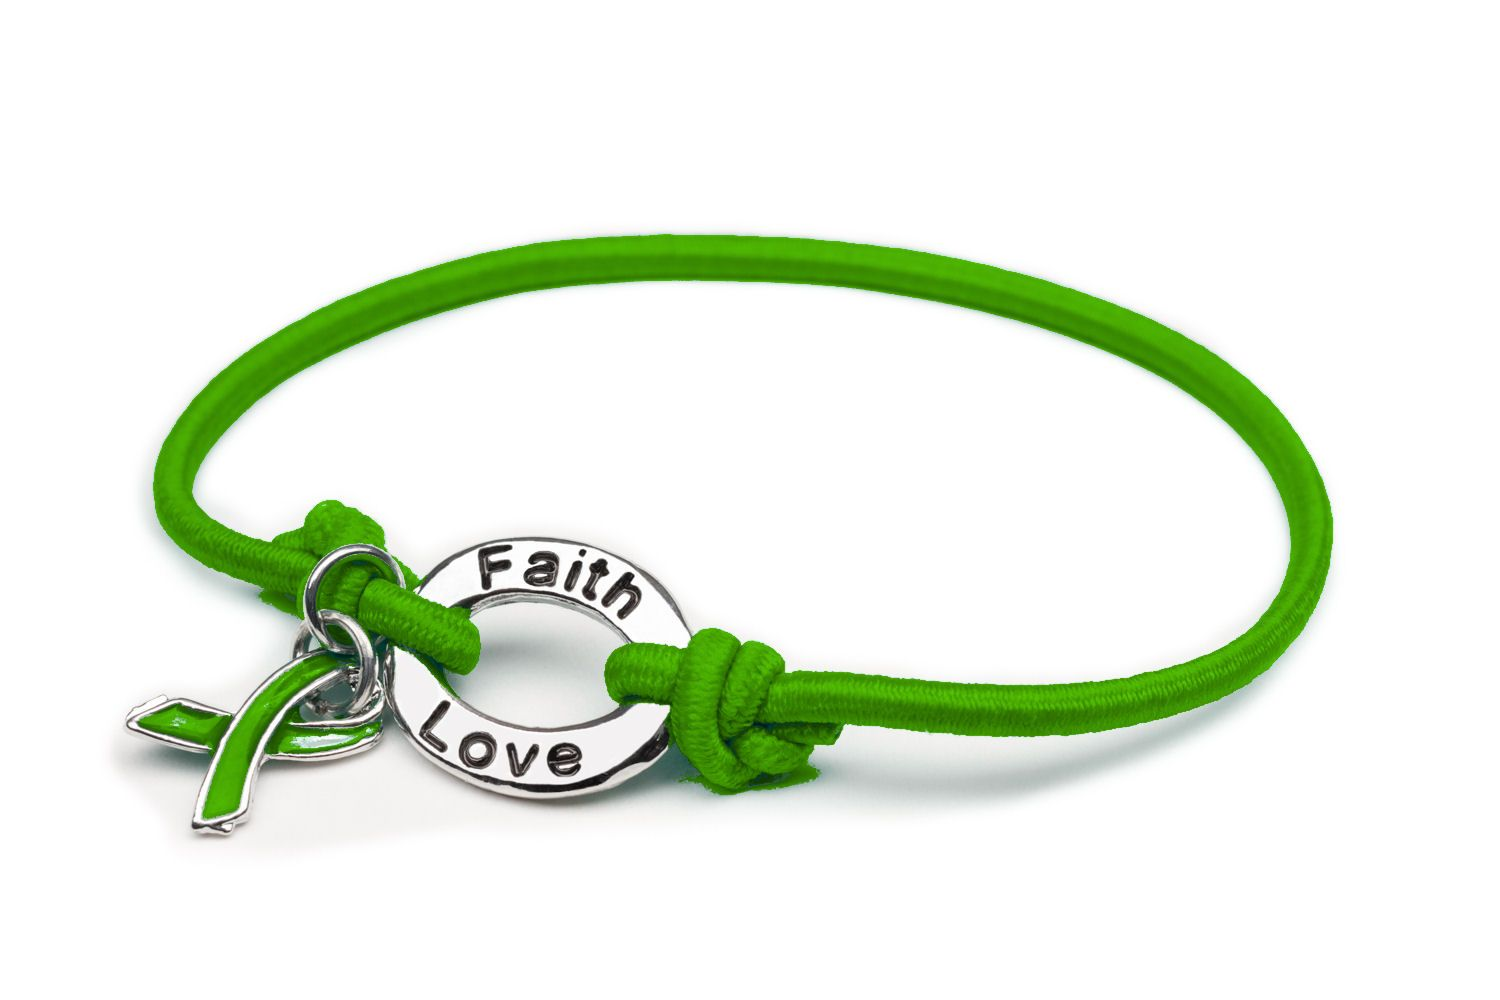 awareness pk pins shop open a canada party campaign c supplies green bracelet lime ribbon index mental products health